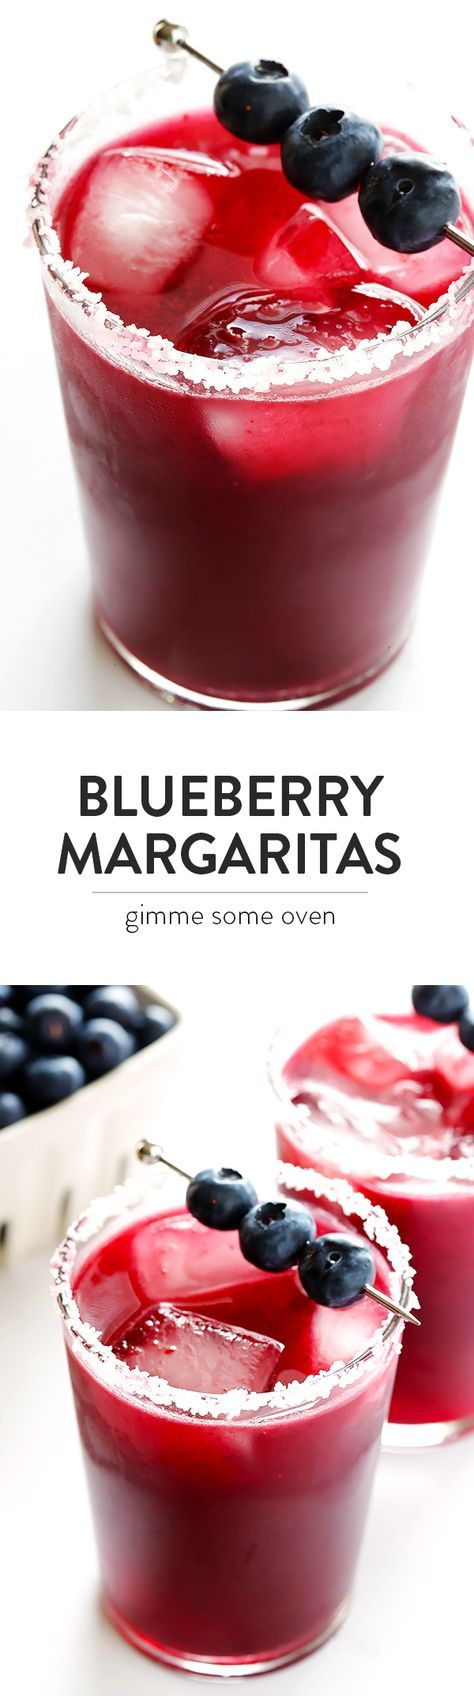 This refreshing blueberry margaritas recipe is sweetened with lots of fresh blueberries, it's quick and easy to make, and always a crowd favorite!